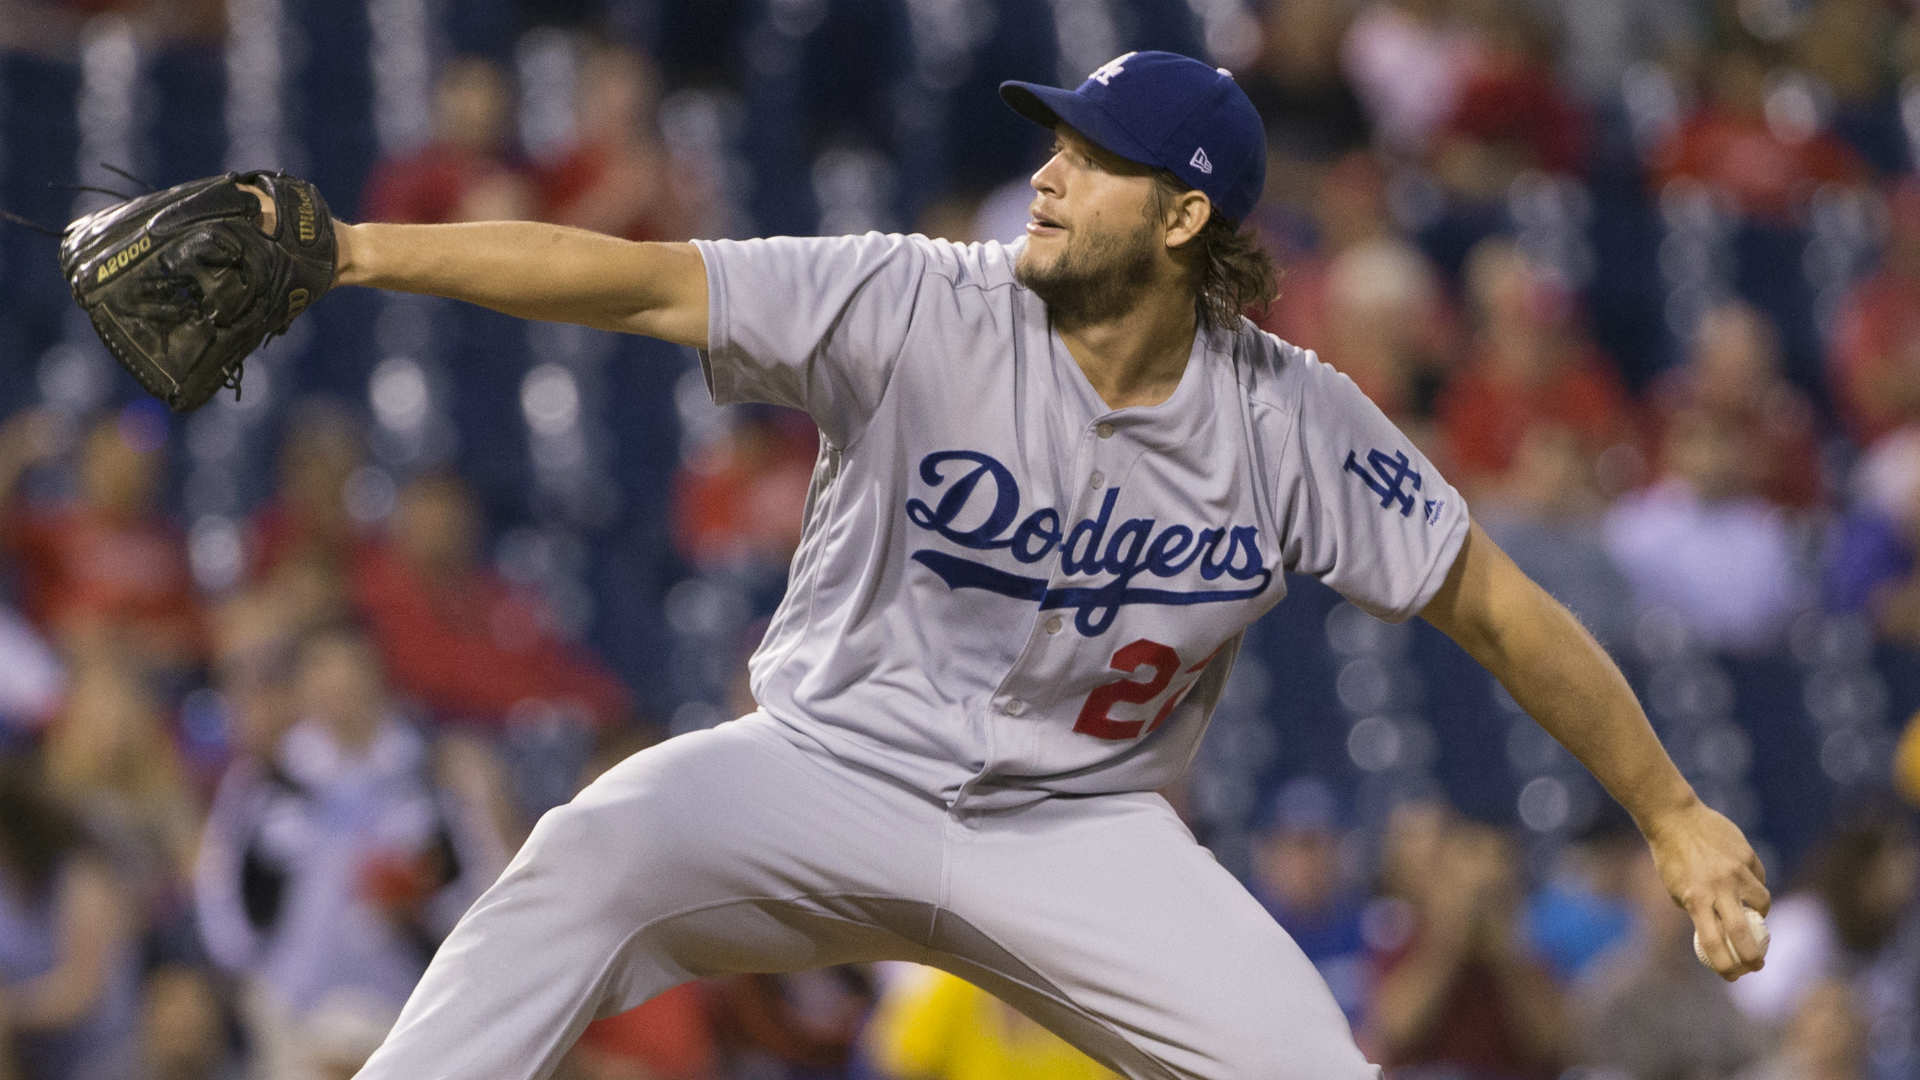 Clayton Kershaw gave up his first ever grand slam against the Phillies